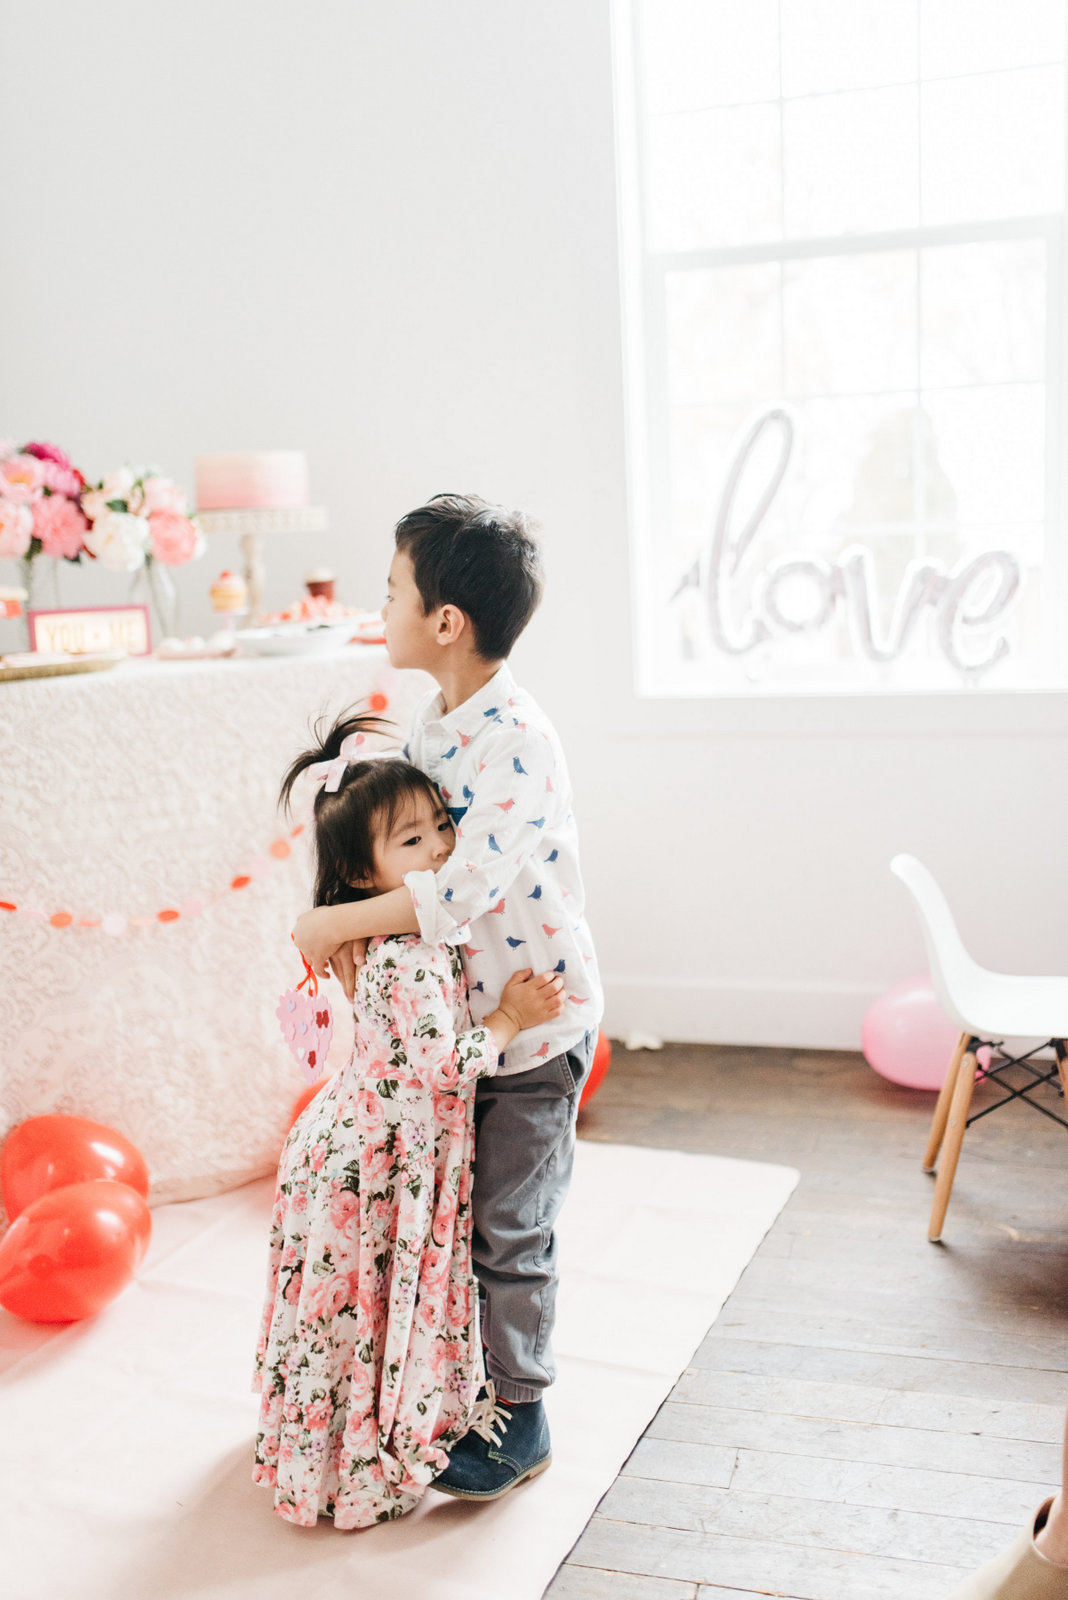 Family Valentine's Day Ideas: Kid's Fashion